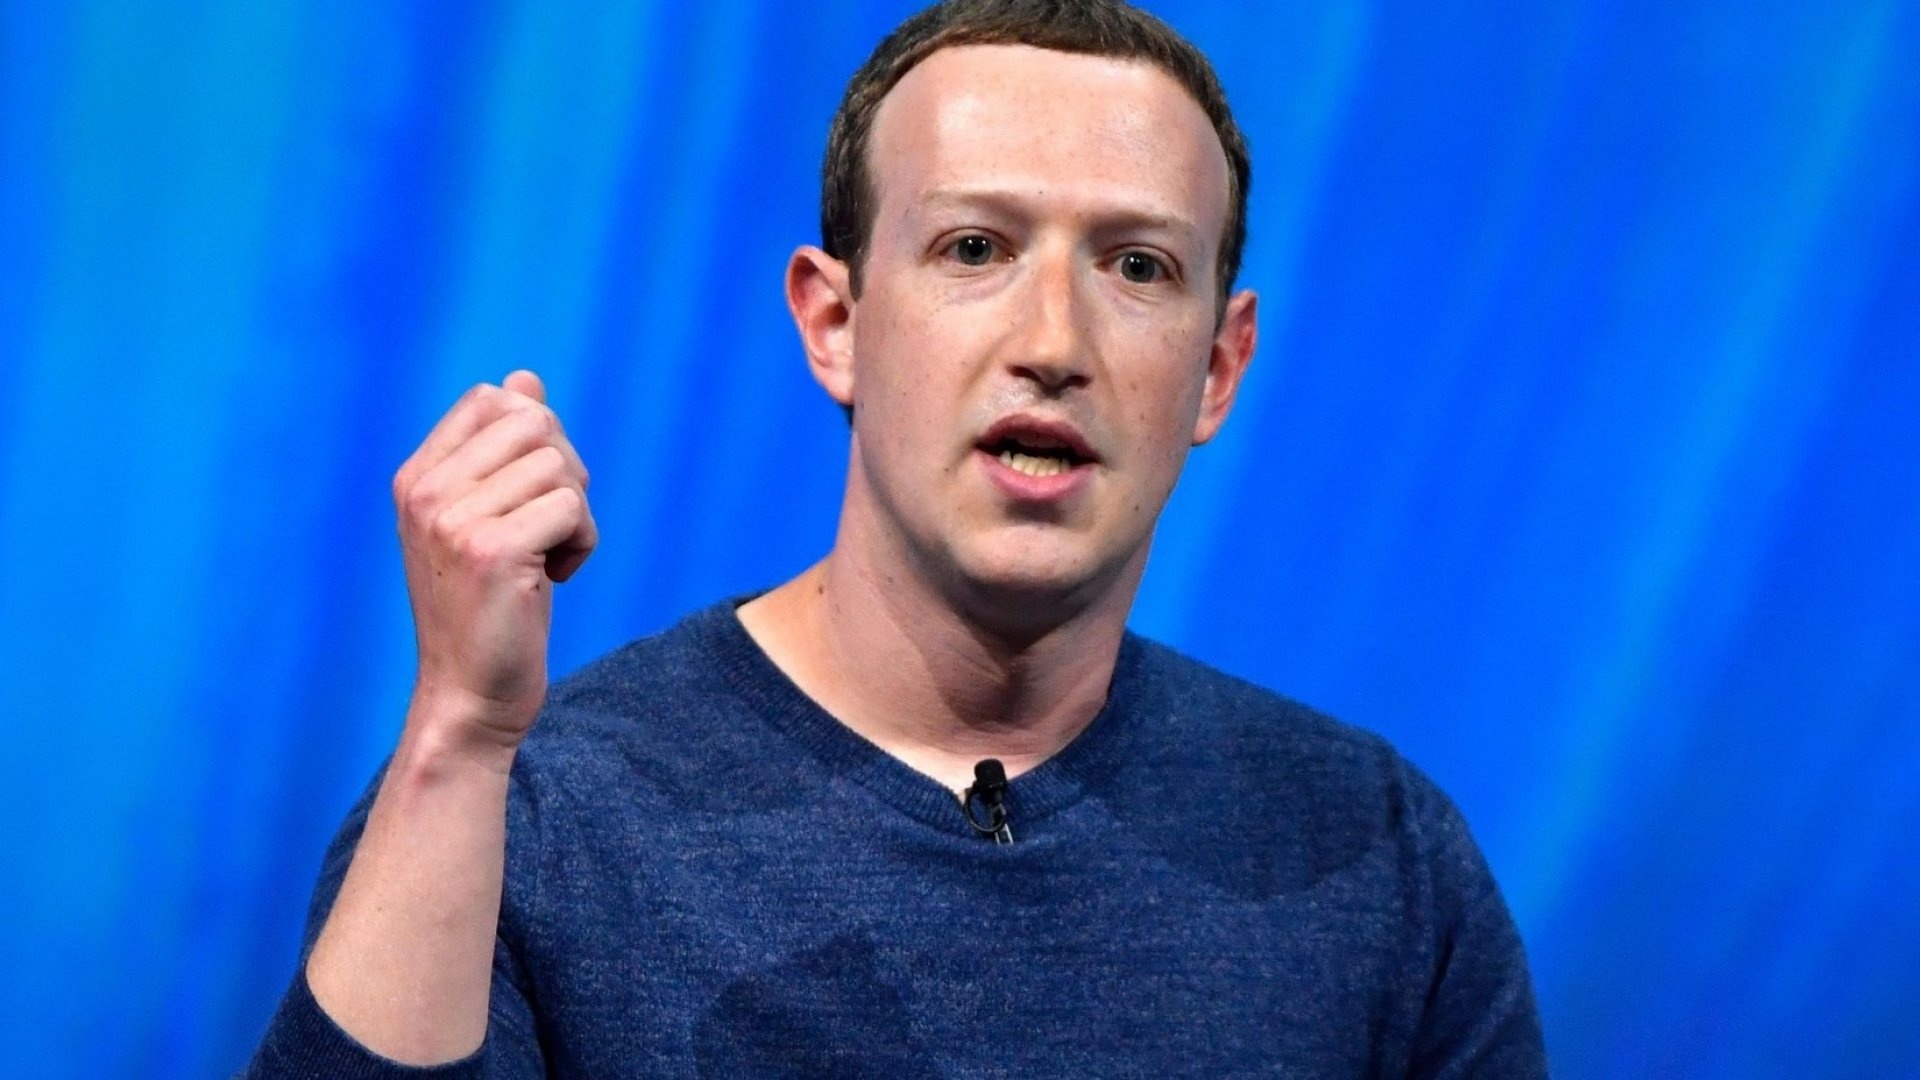 Mark Zuckerberg Just Explained His Plan to Reopen Facebook